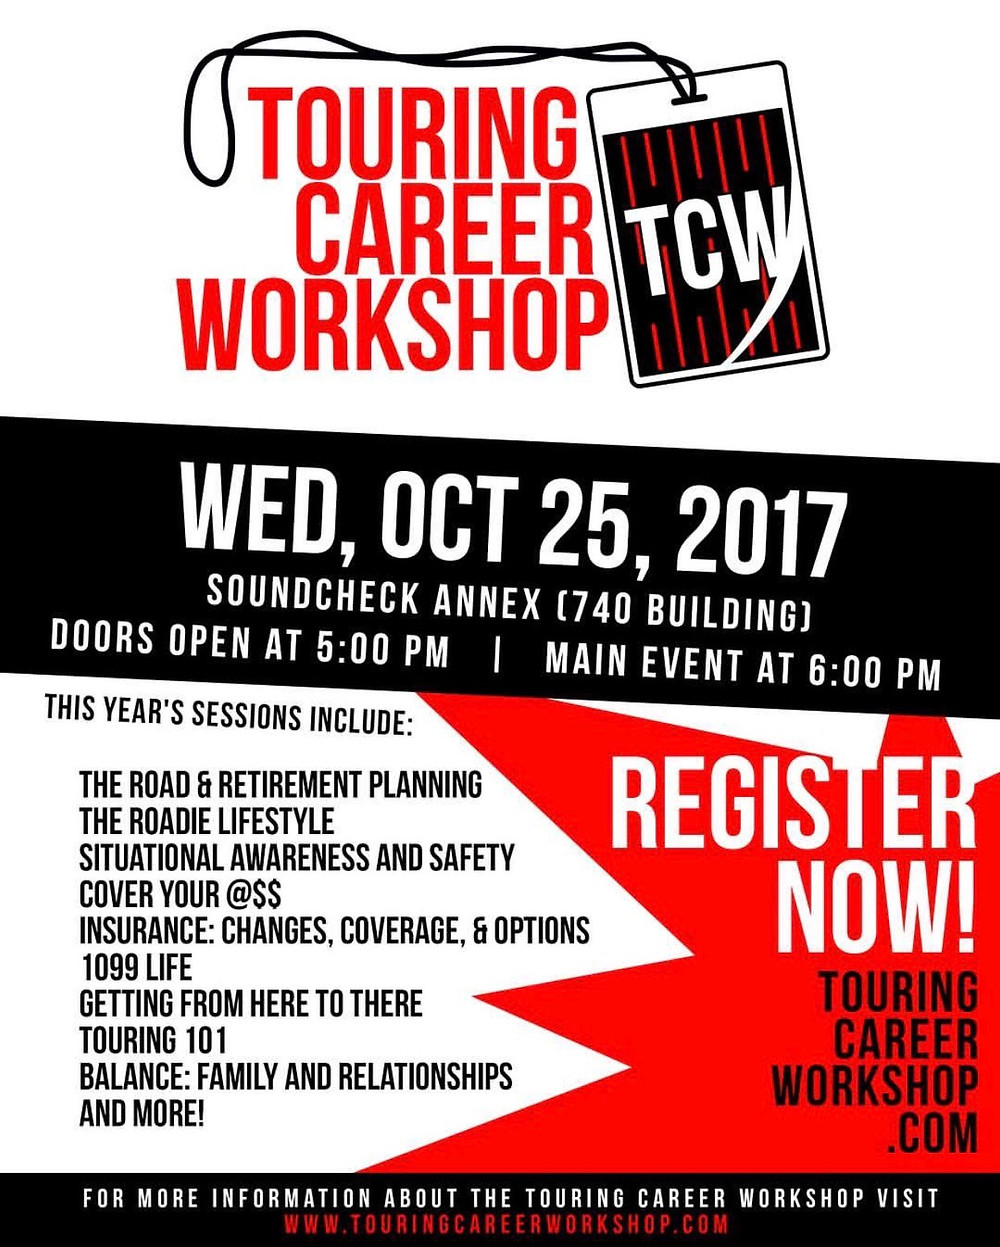 Touring Career Workshop Flyer